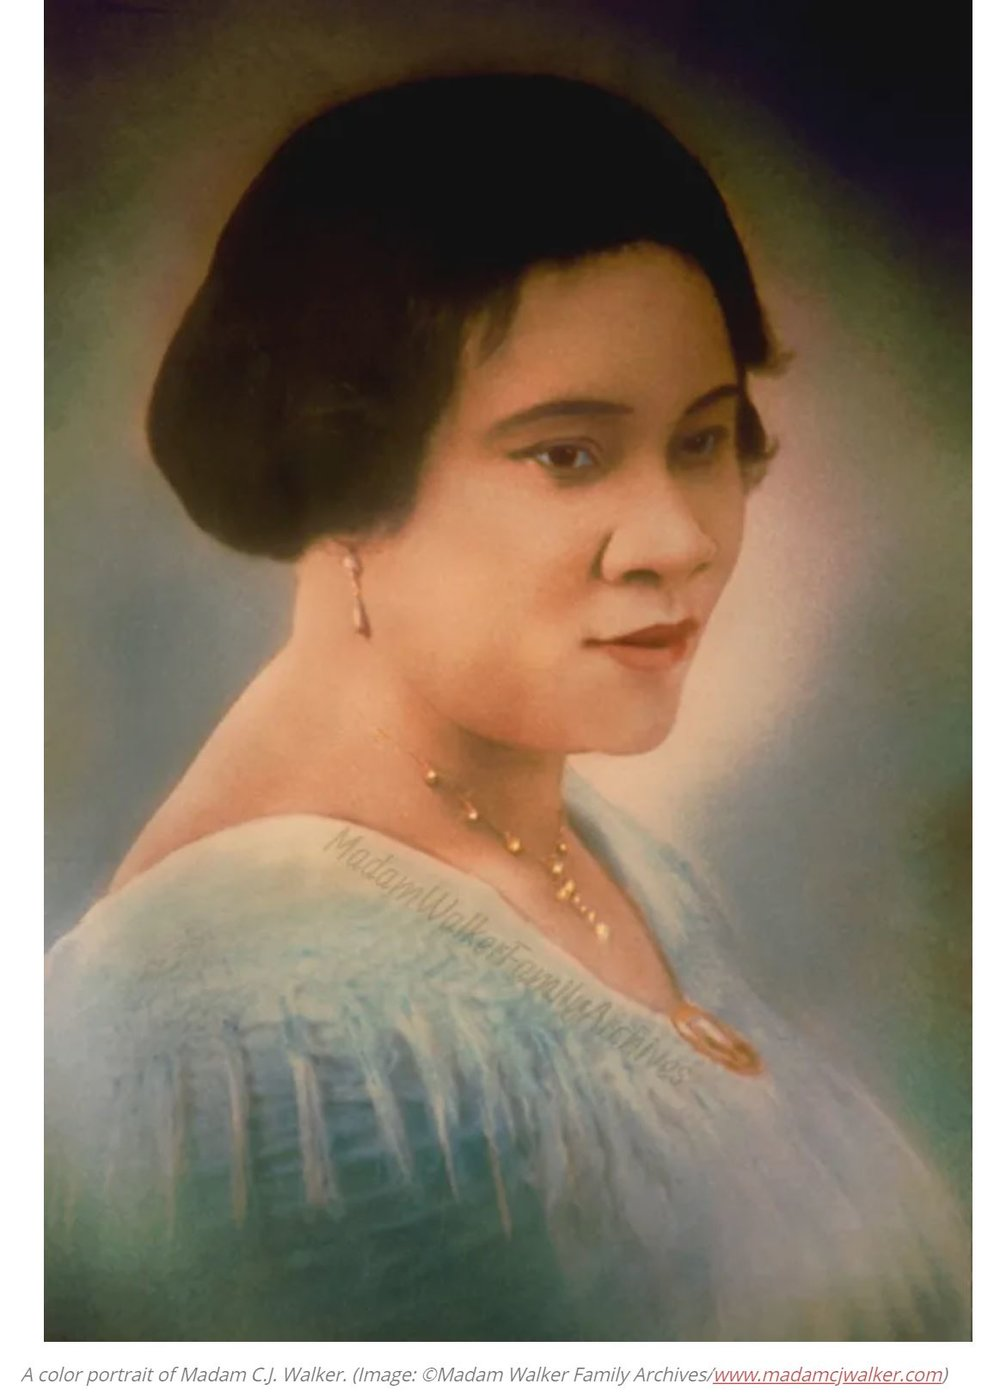 For more background on Madam C.J. Walker, click ( here ).